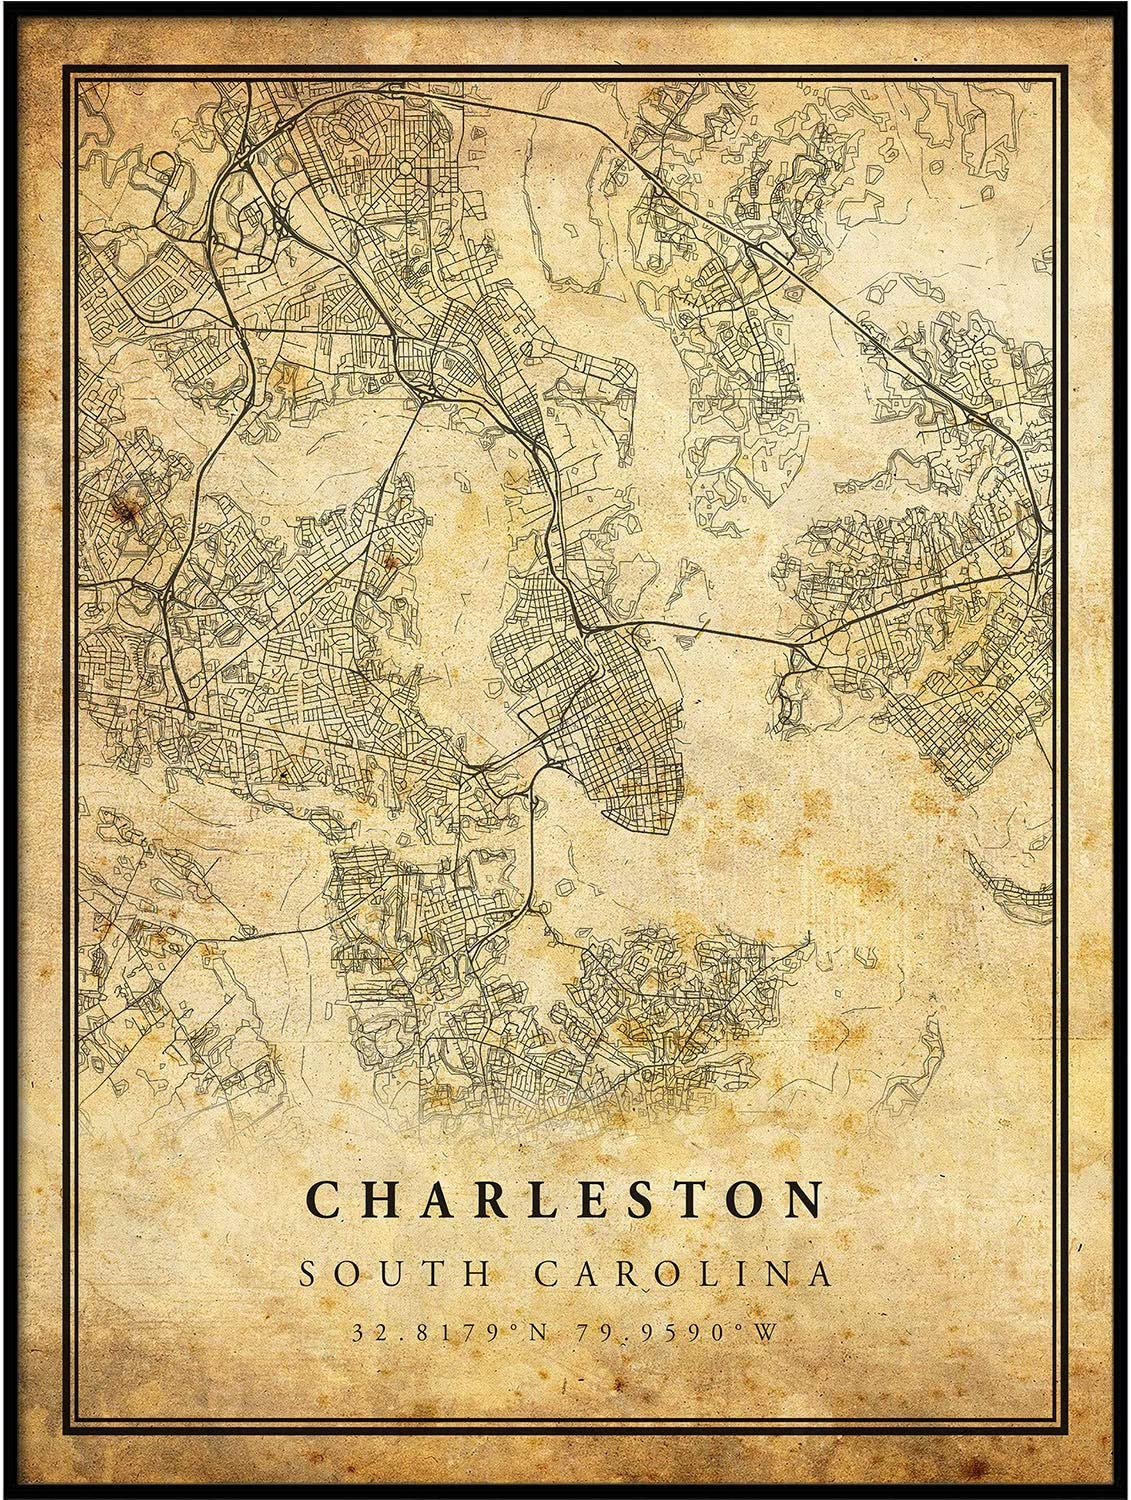 Charleston map Vintage Style Poster Print | Old City Artwork Prints | Antique Style Home Decor | South Carolina Wall Art Gift | map Poster 16x20